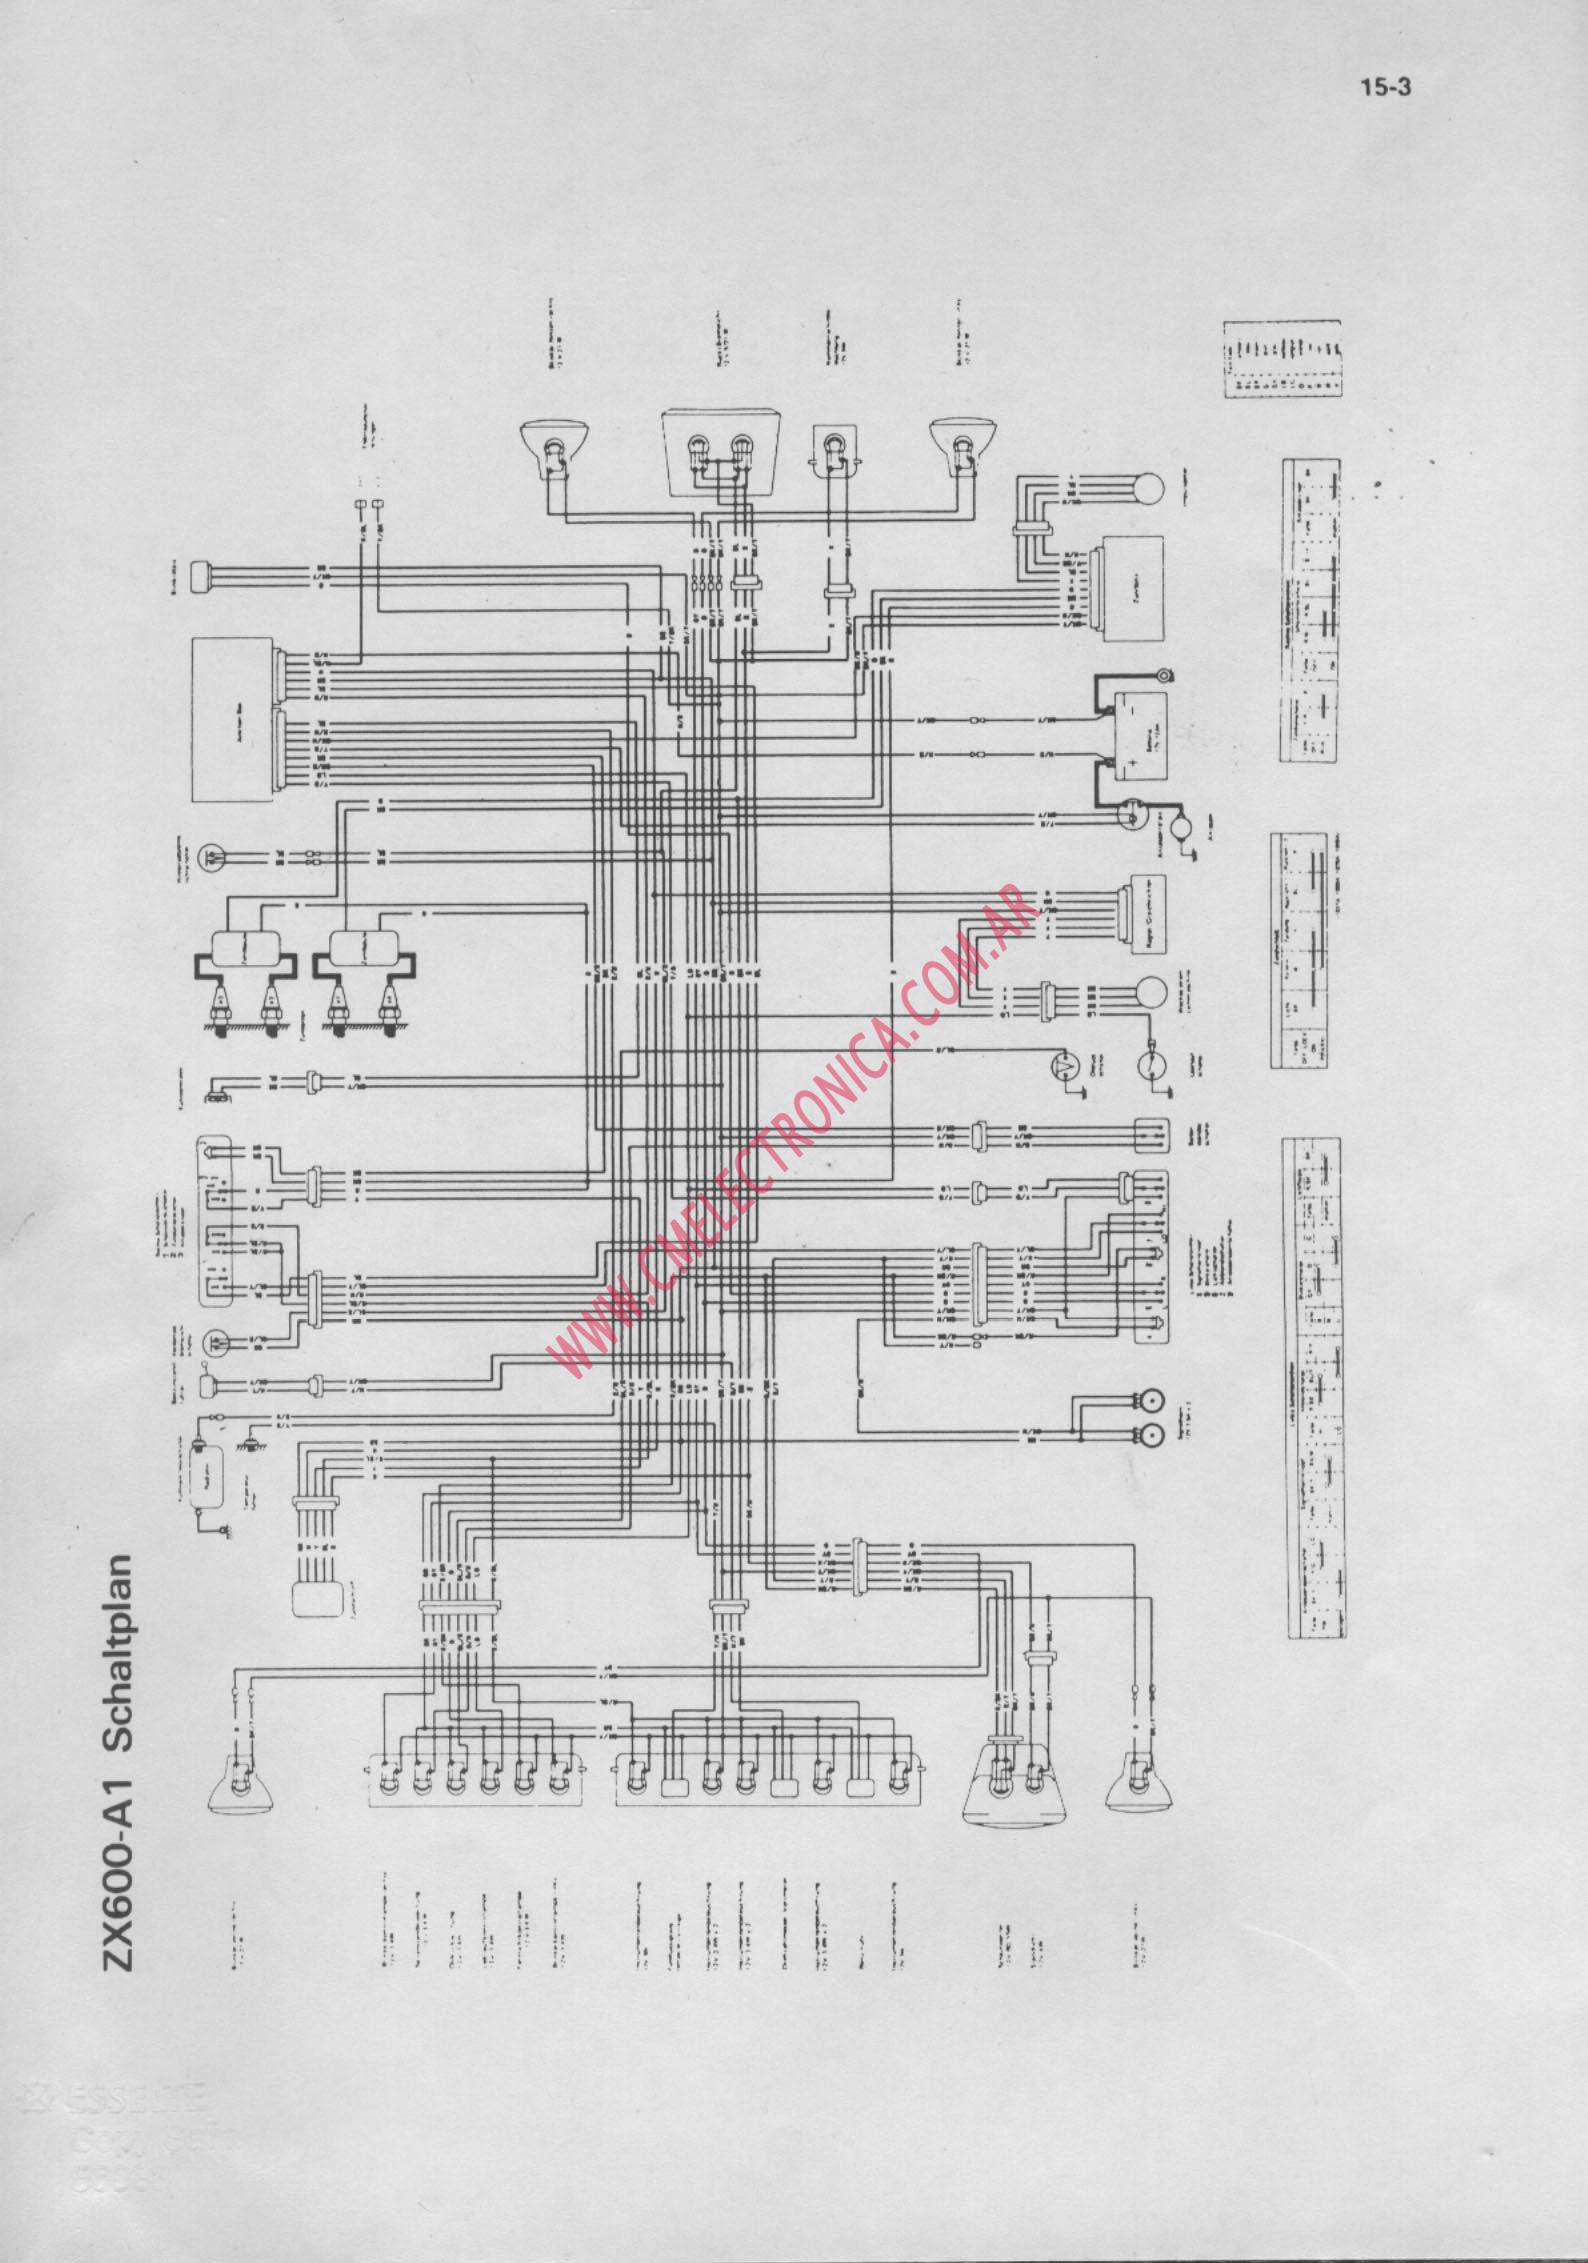 Kawasaki Ignition Switch Wiring Diagram Will Be A 750 Jet Ski Diagrams Mule Get Free Image